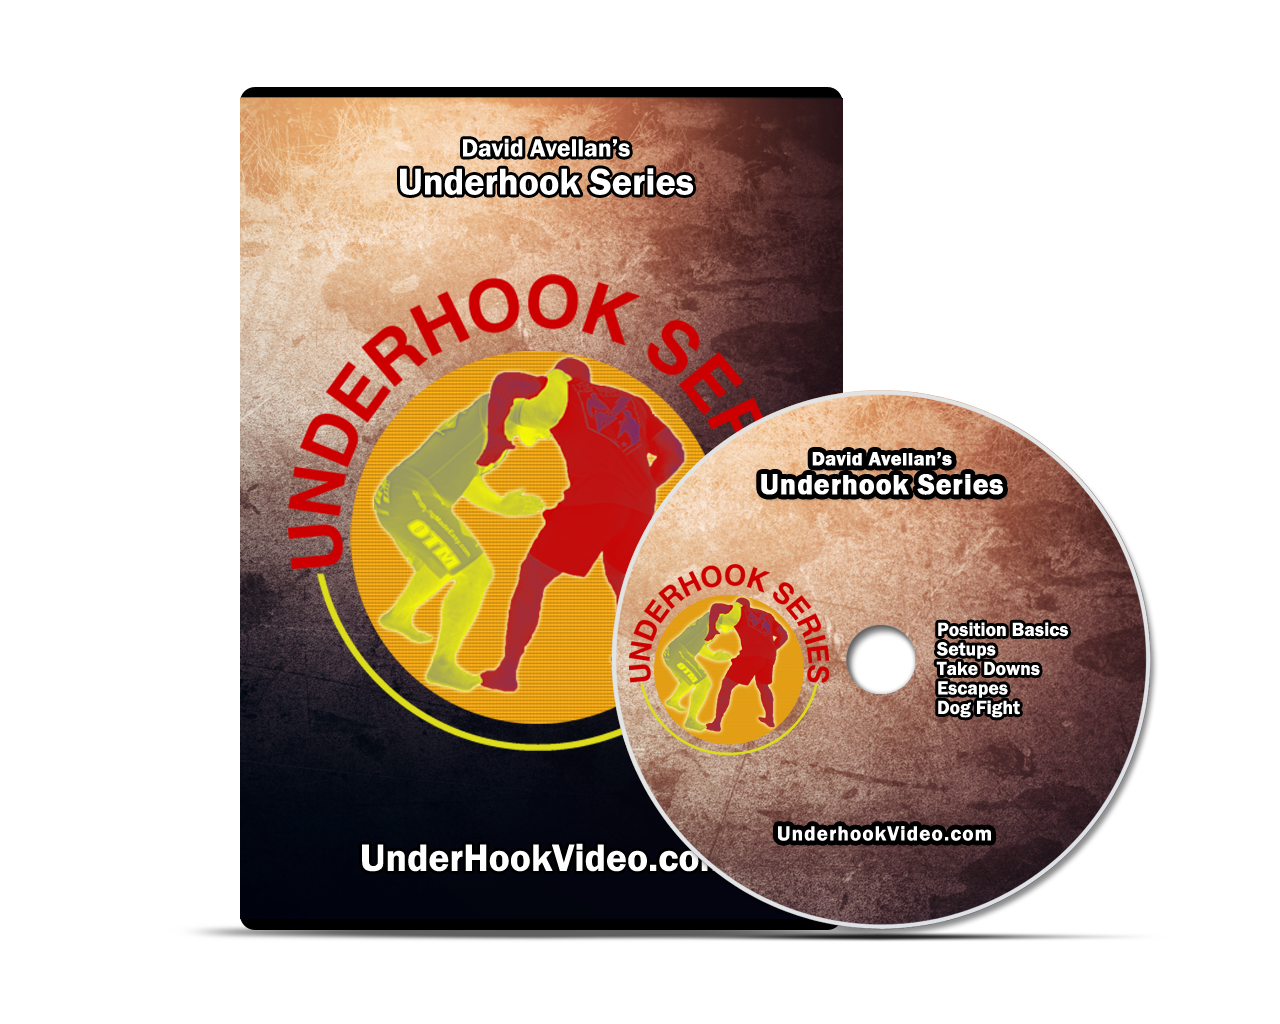 underhook dvd